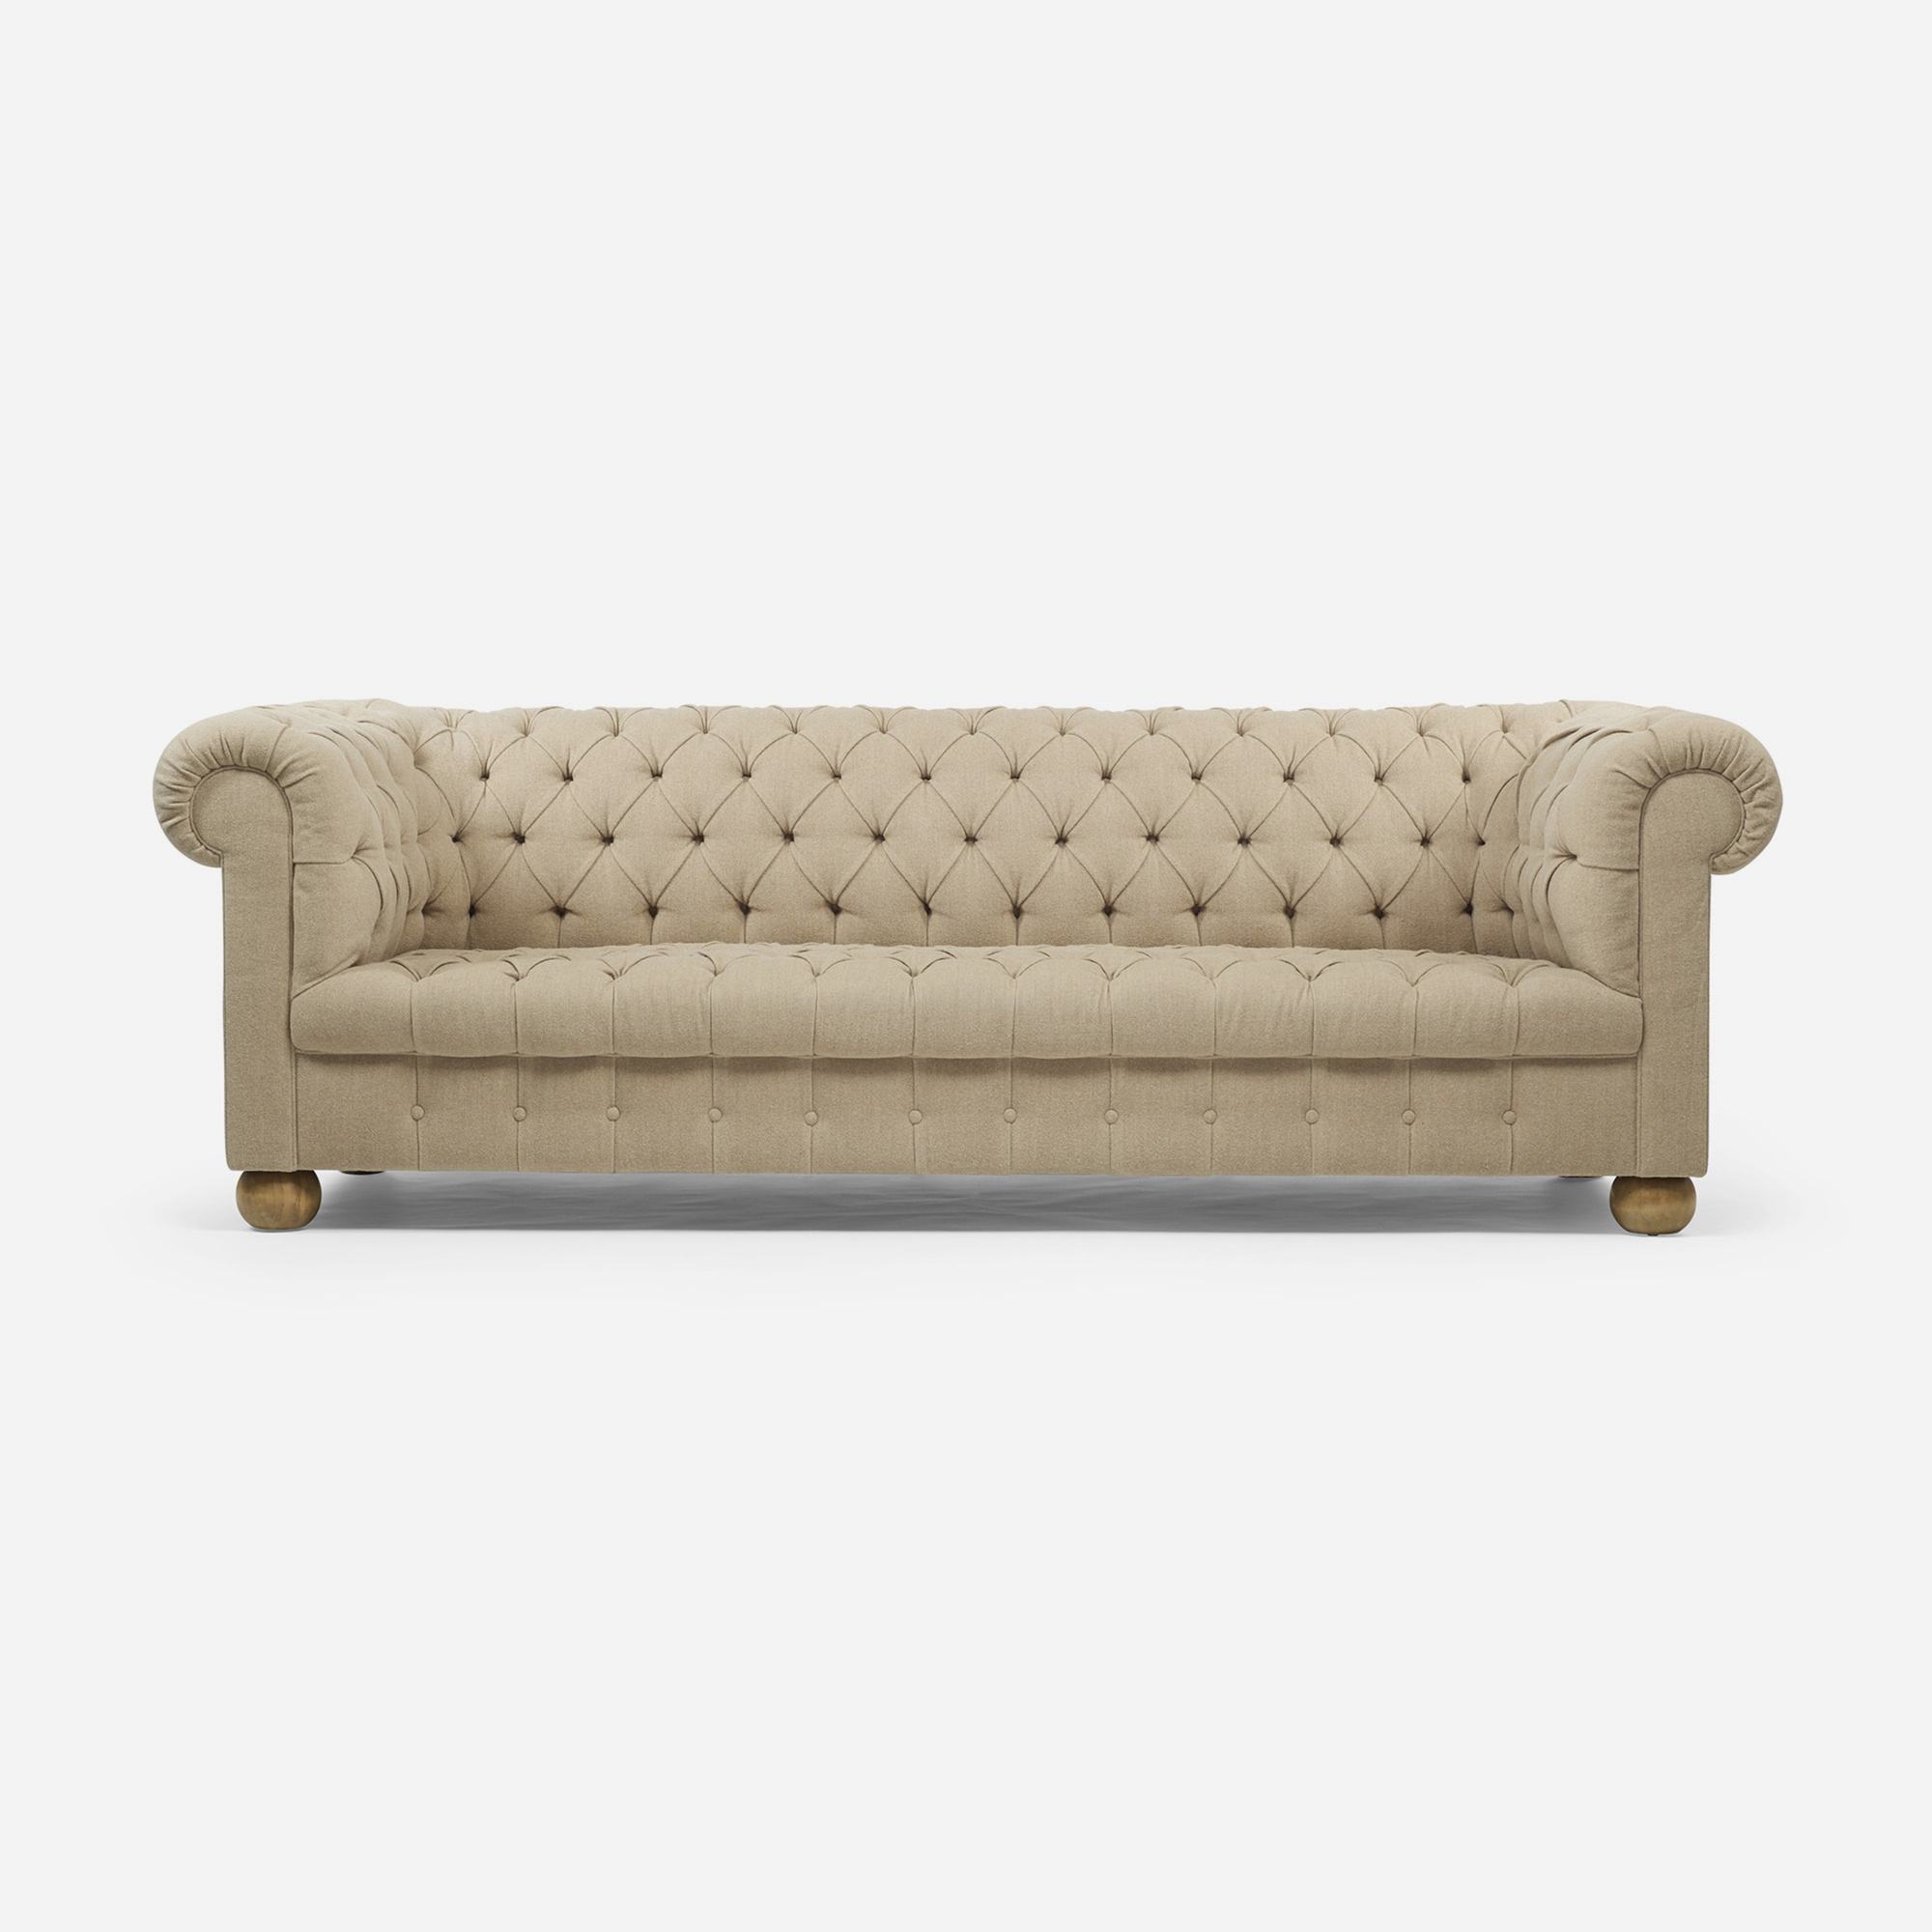 576: Modern / Chesterfield sofa (1 of 4)